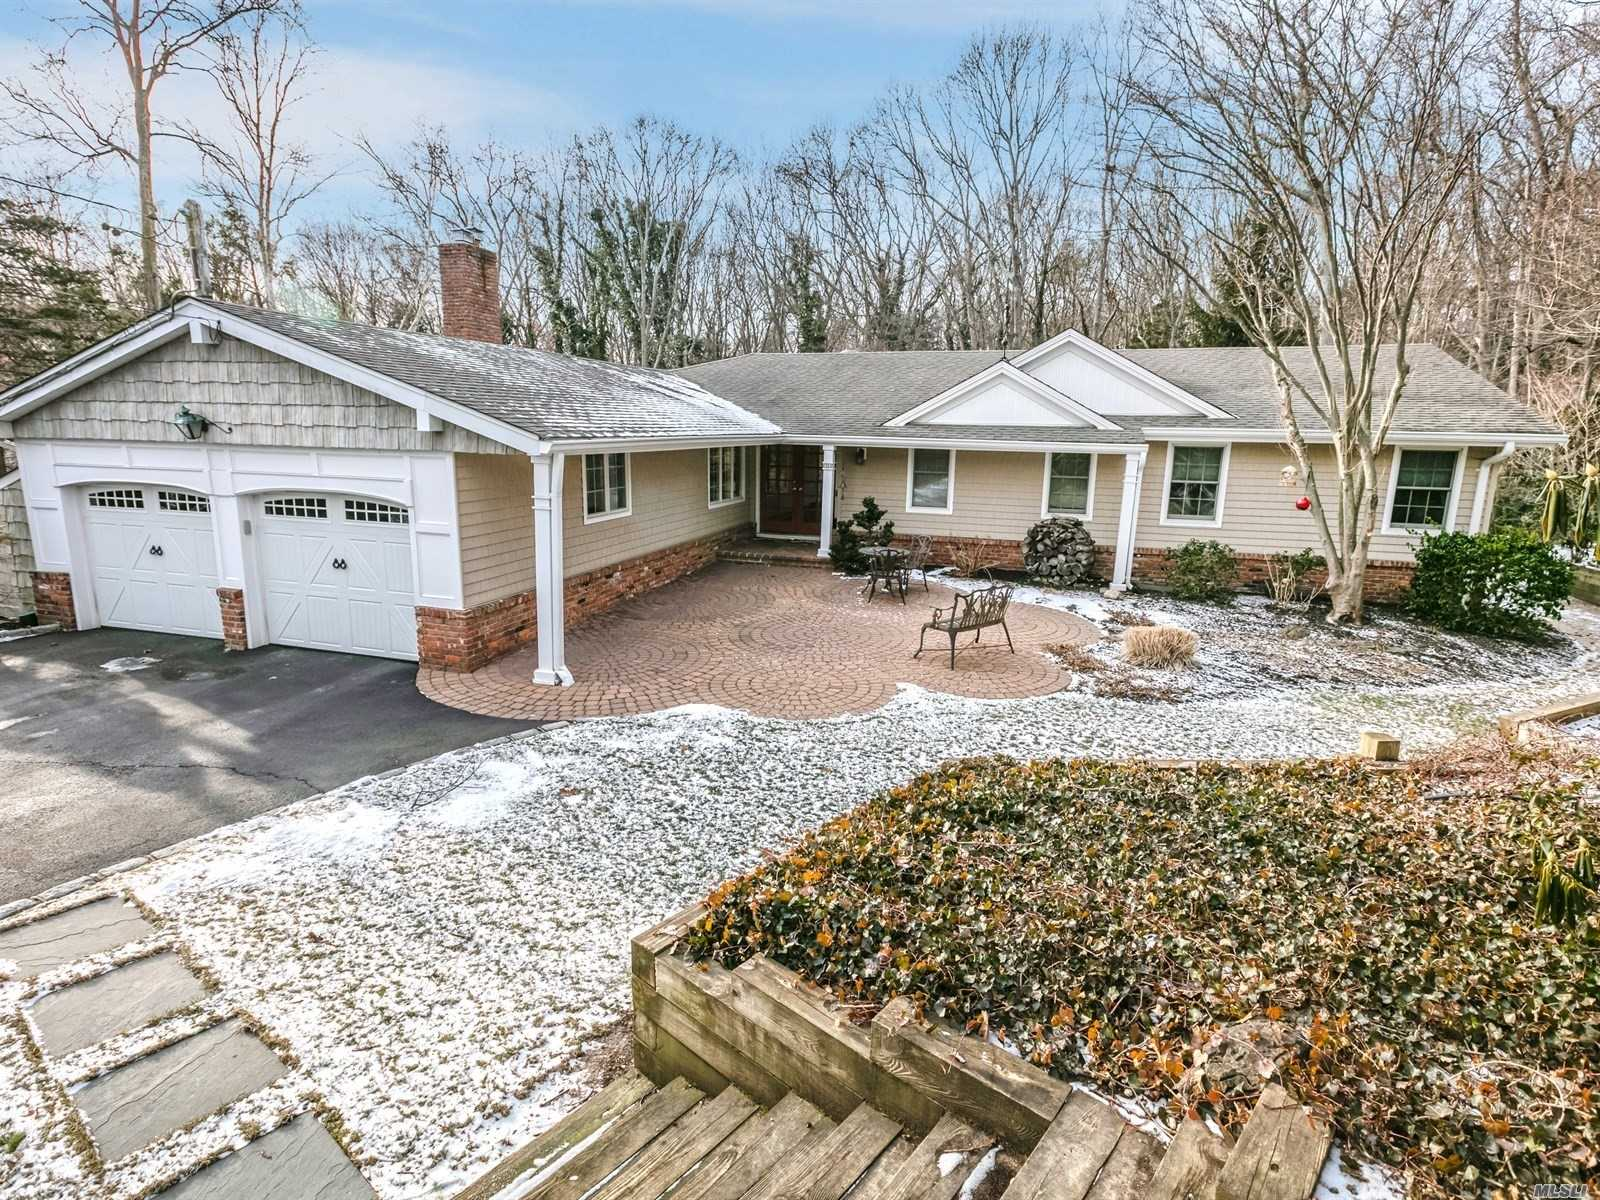 8 Chatham Pl - Dix Hills, New York